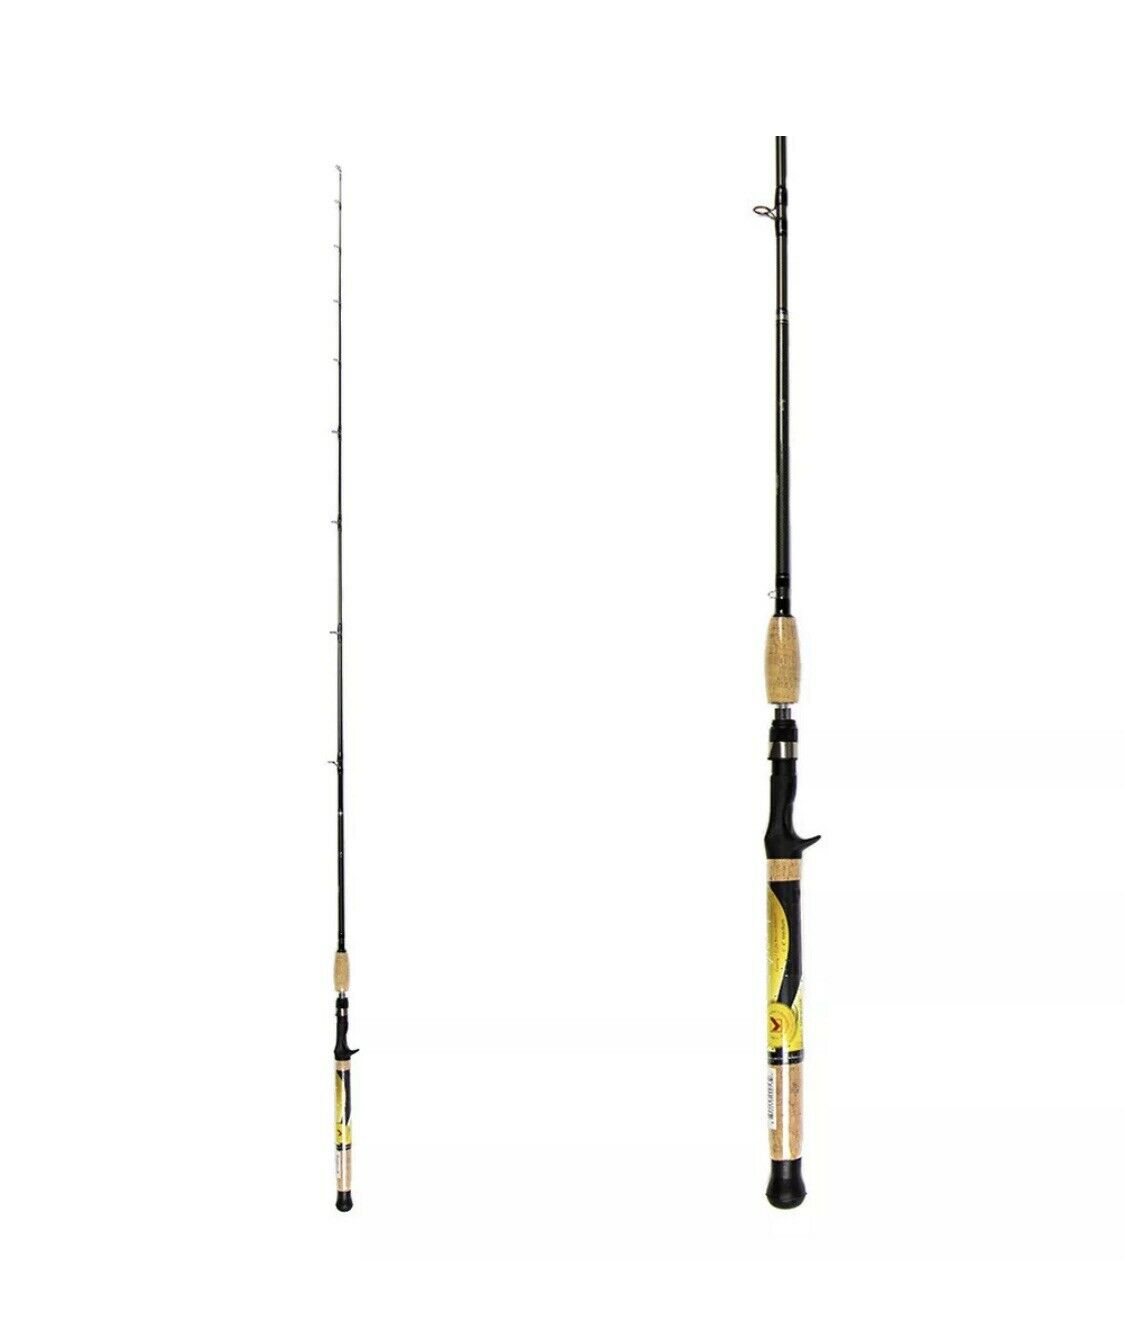 New Norsemen MWS64MC 6'4″ Casting Rod, Medium Action great for windy conditions